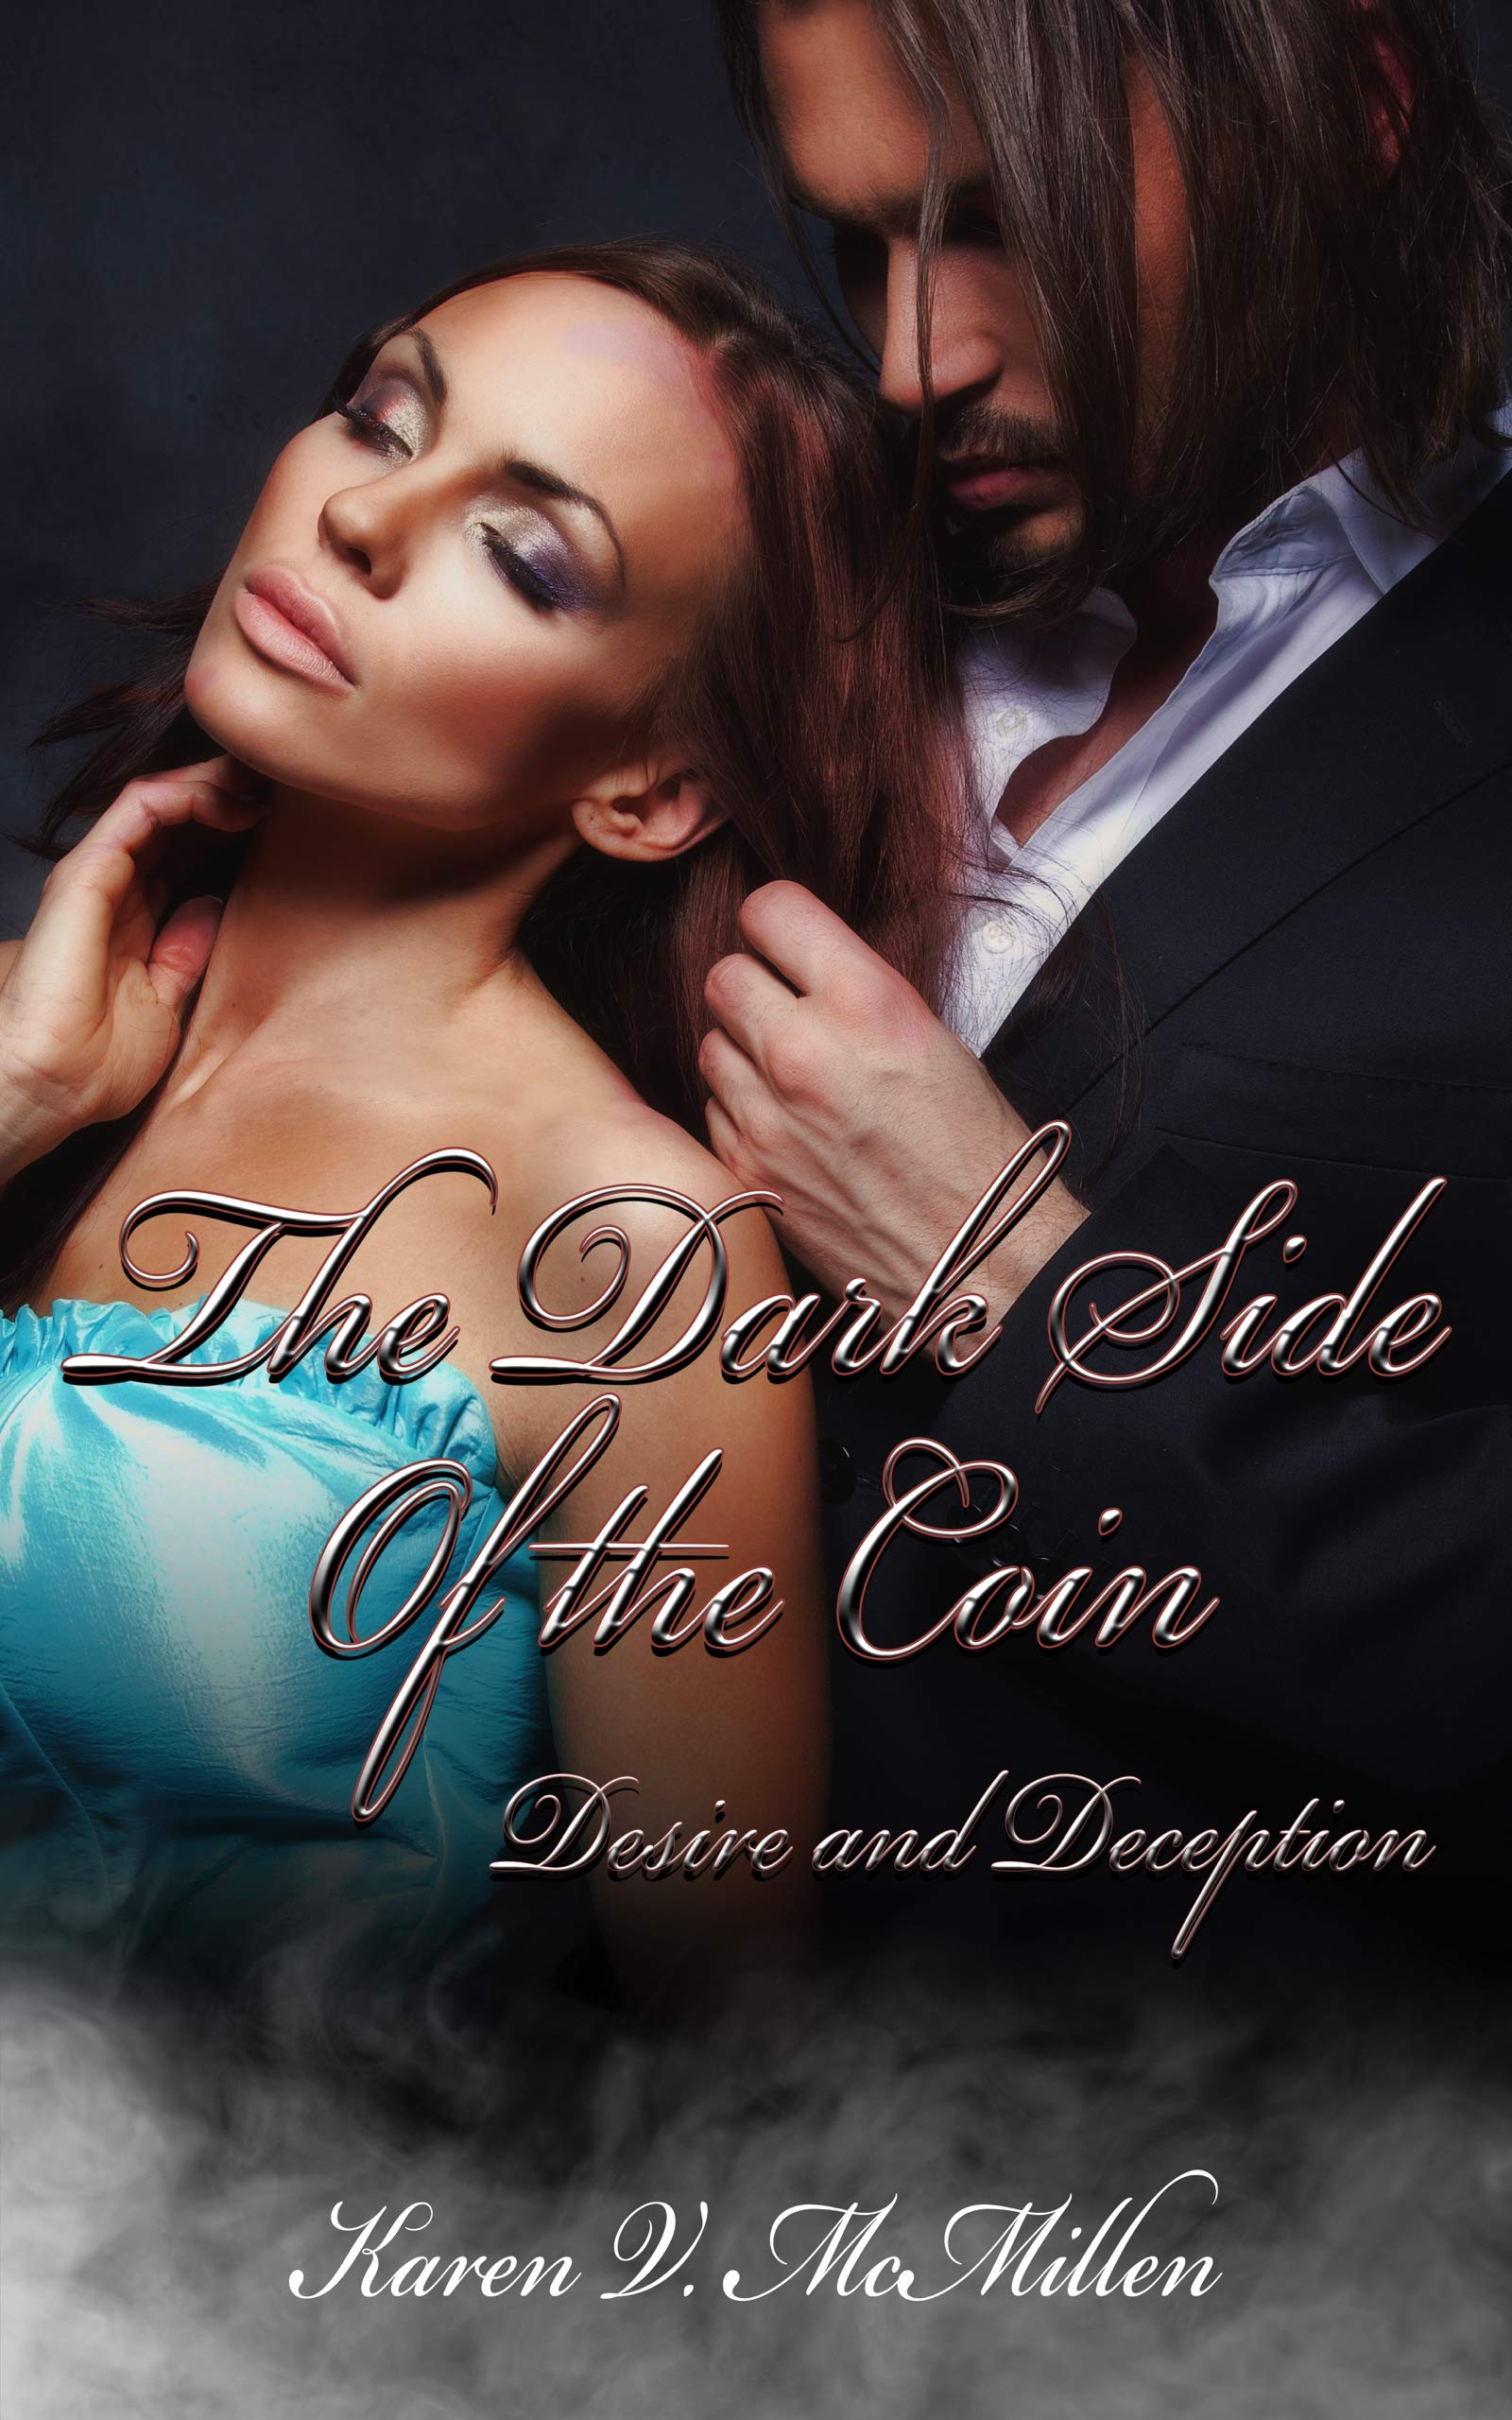 The Dark Side of the Coin: Desire and Deception (Through Emerald Eyes Book 3)